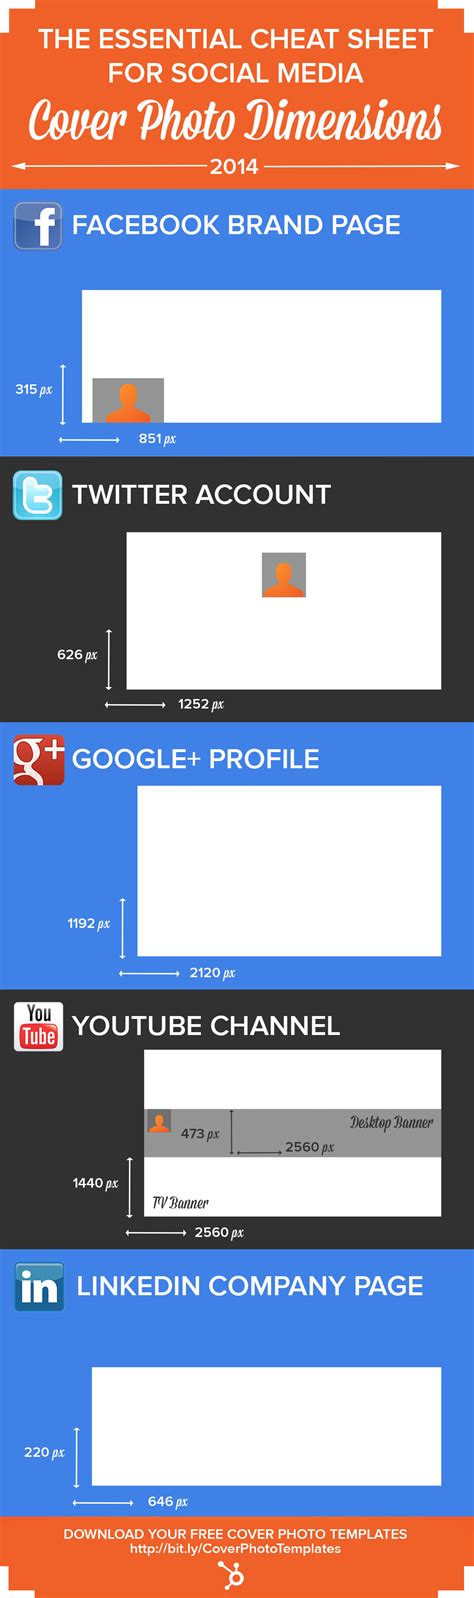 the essential cheat sheet of cover photo dimensions for